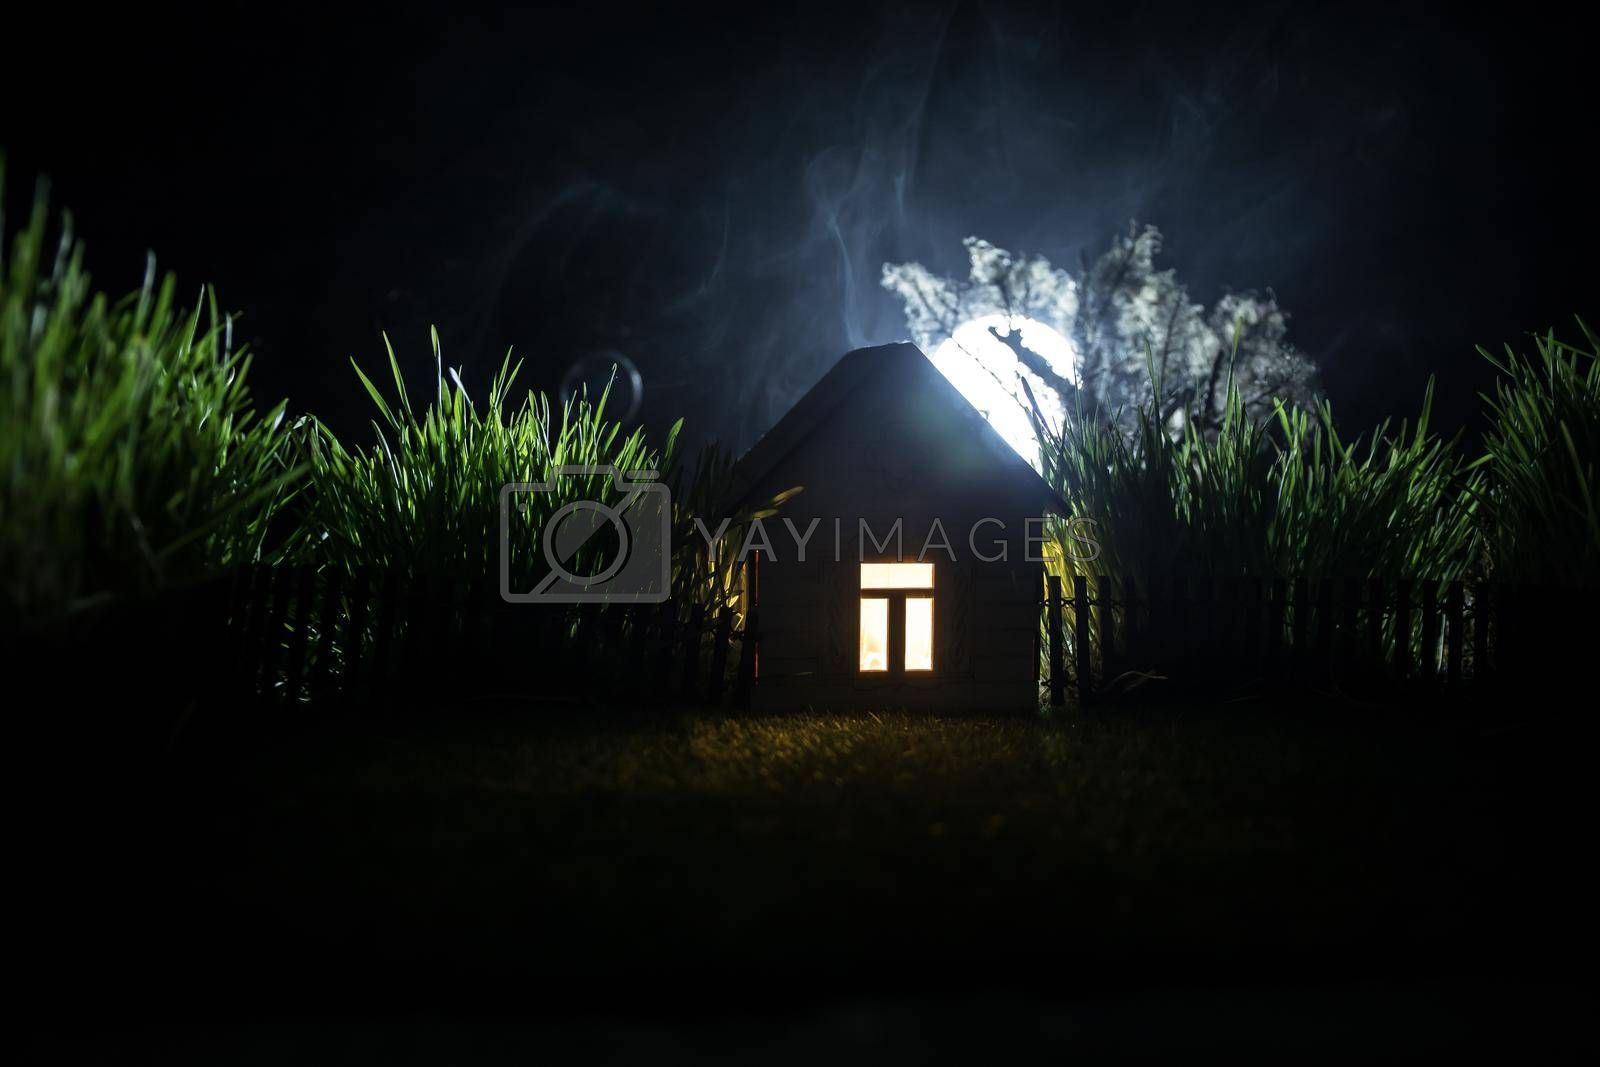 Full moon over quiet village at night. Decorative toy house with giant green grass under the moonlight. Selective focus